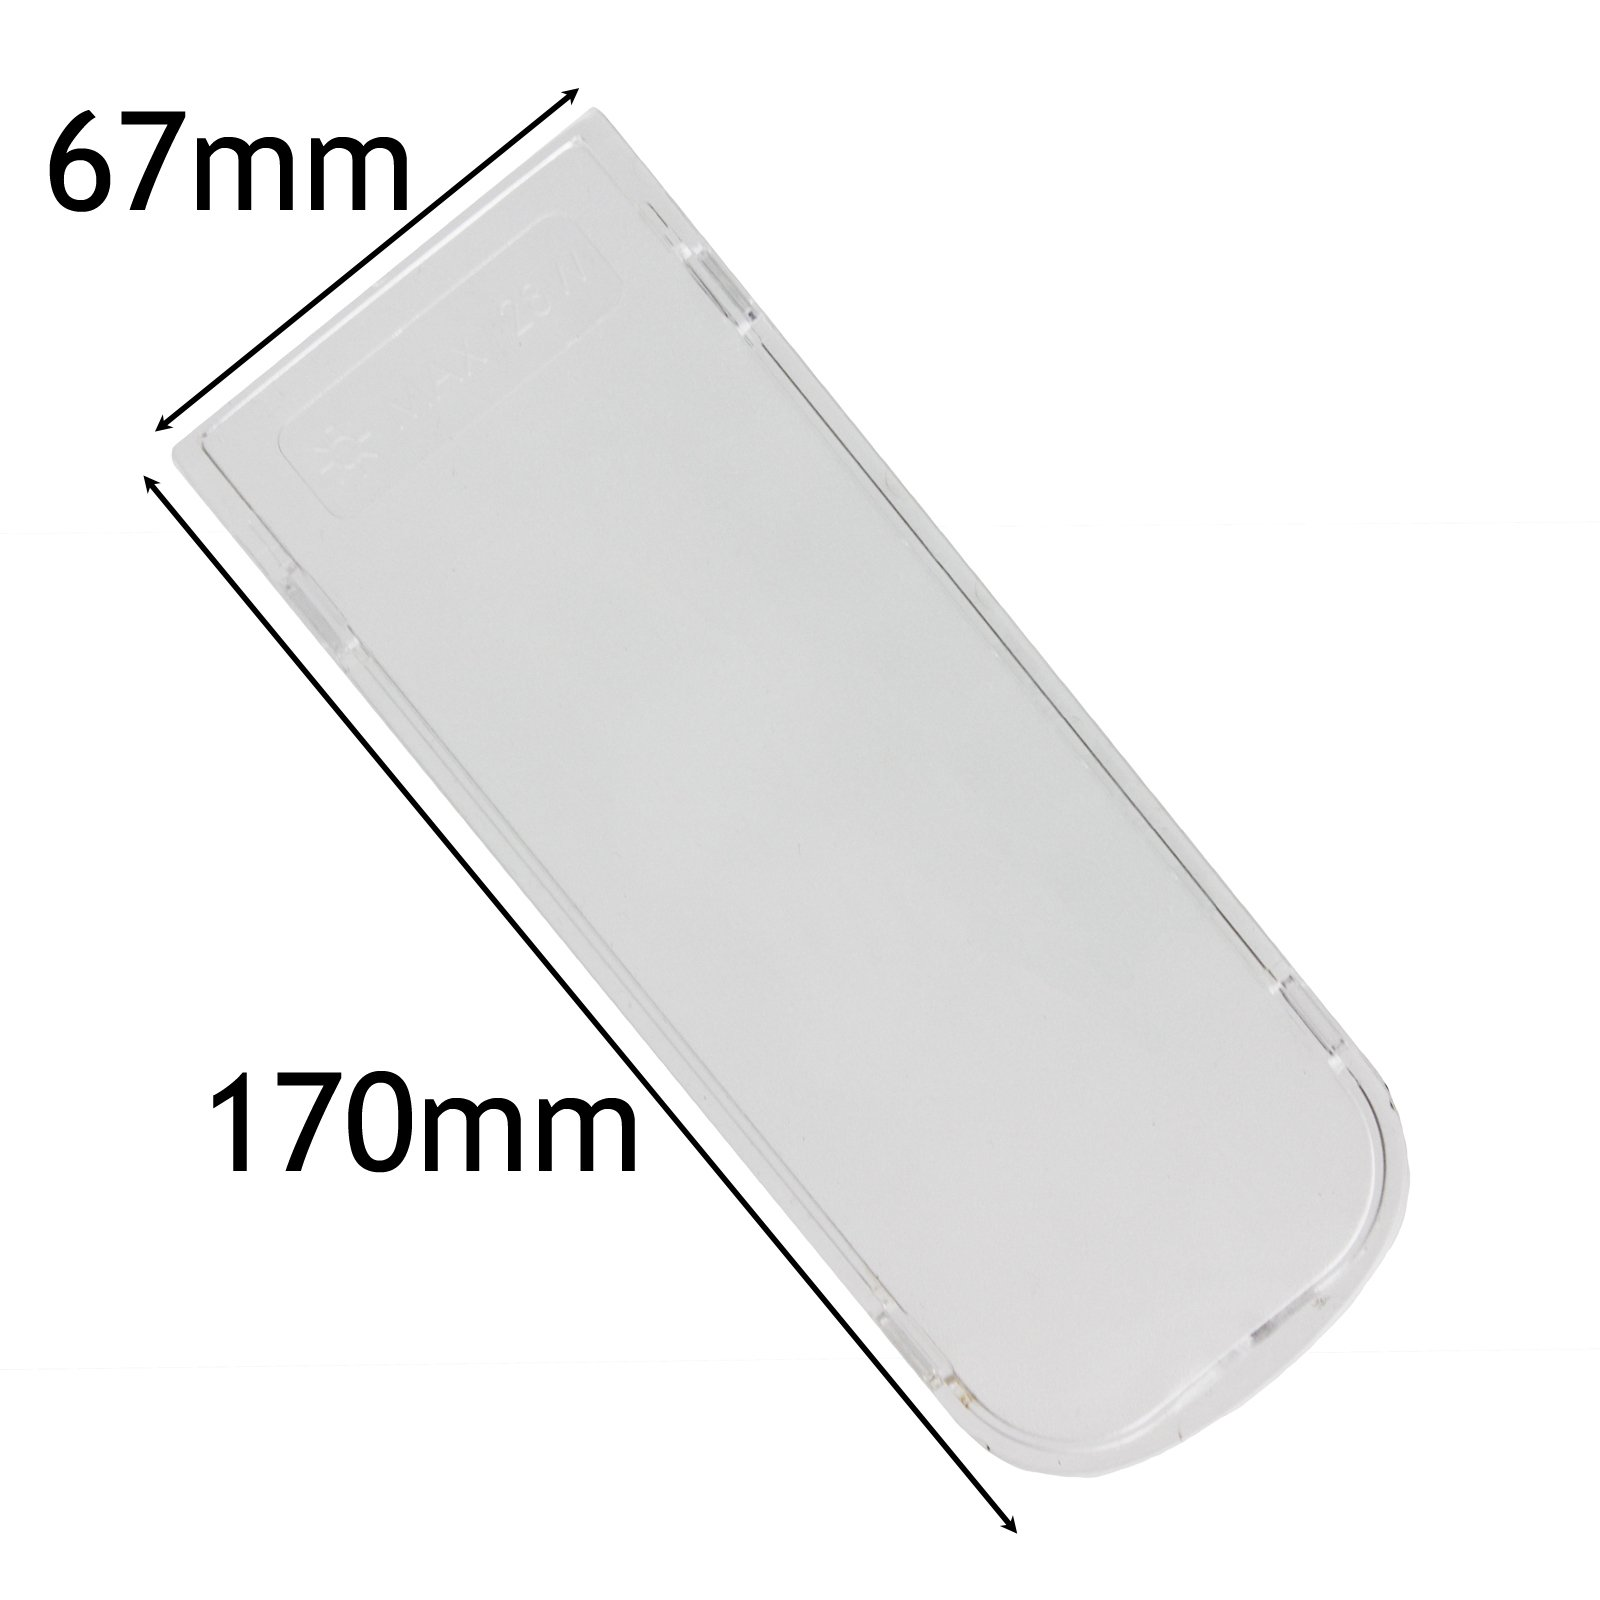 Spares2go Cooker Hood Light Diffuser/Lens Cover Plate (170Mm X 67Mm)